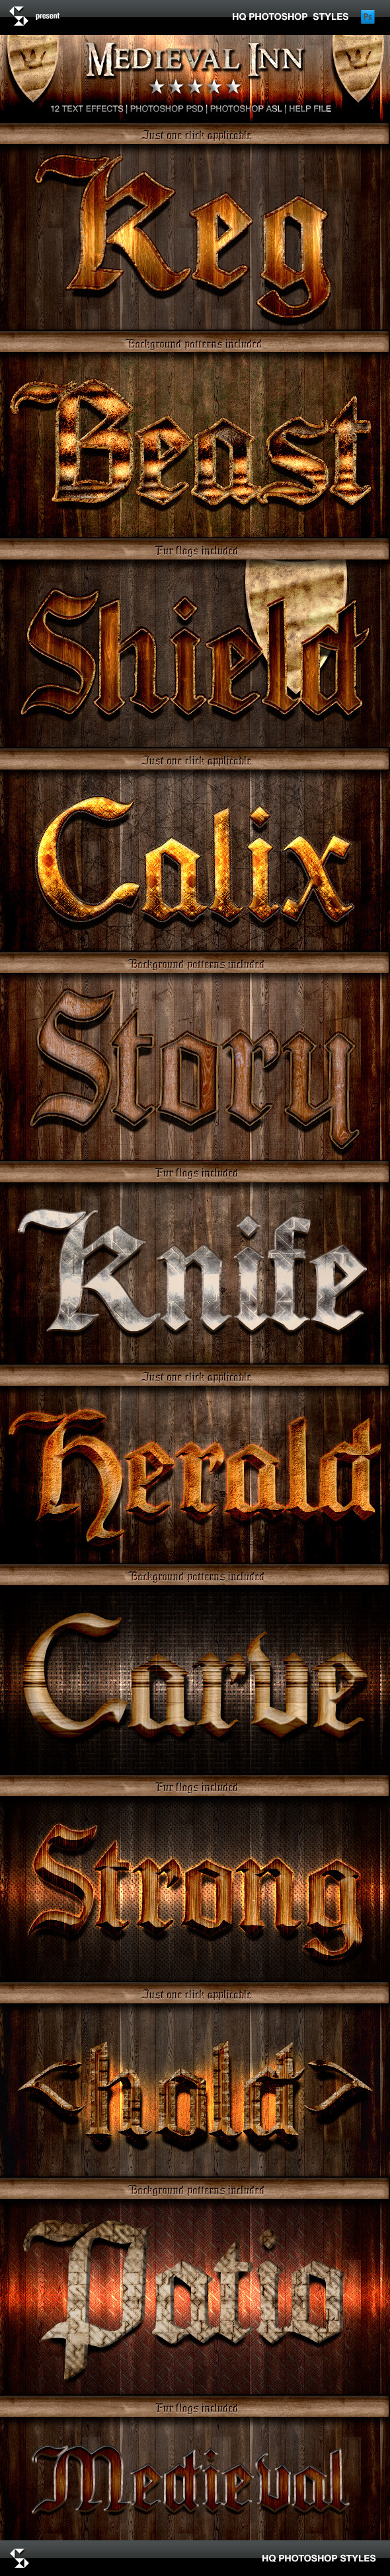 Fantasy Styles - Medieval Inn - Text Effects Styles